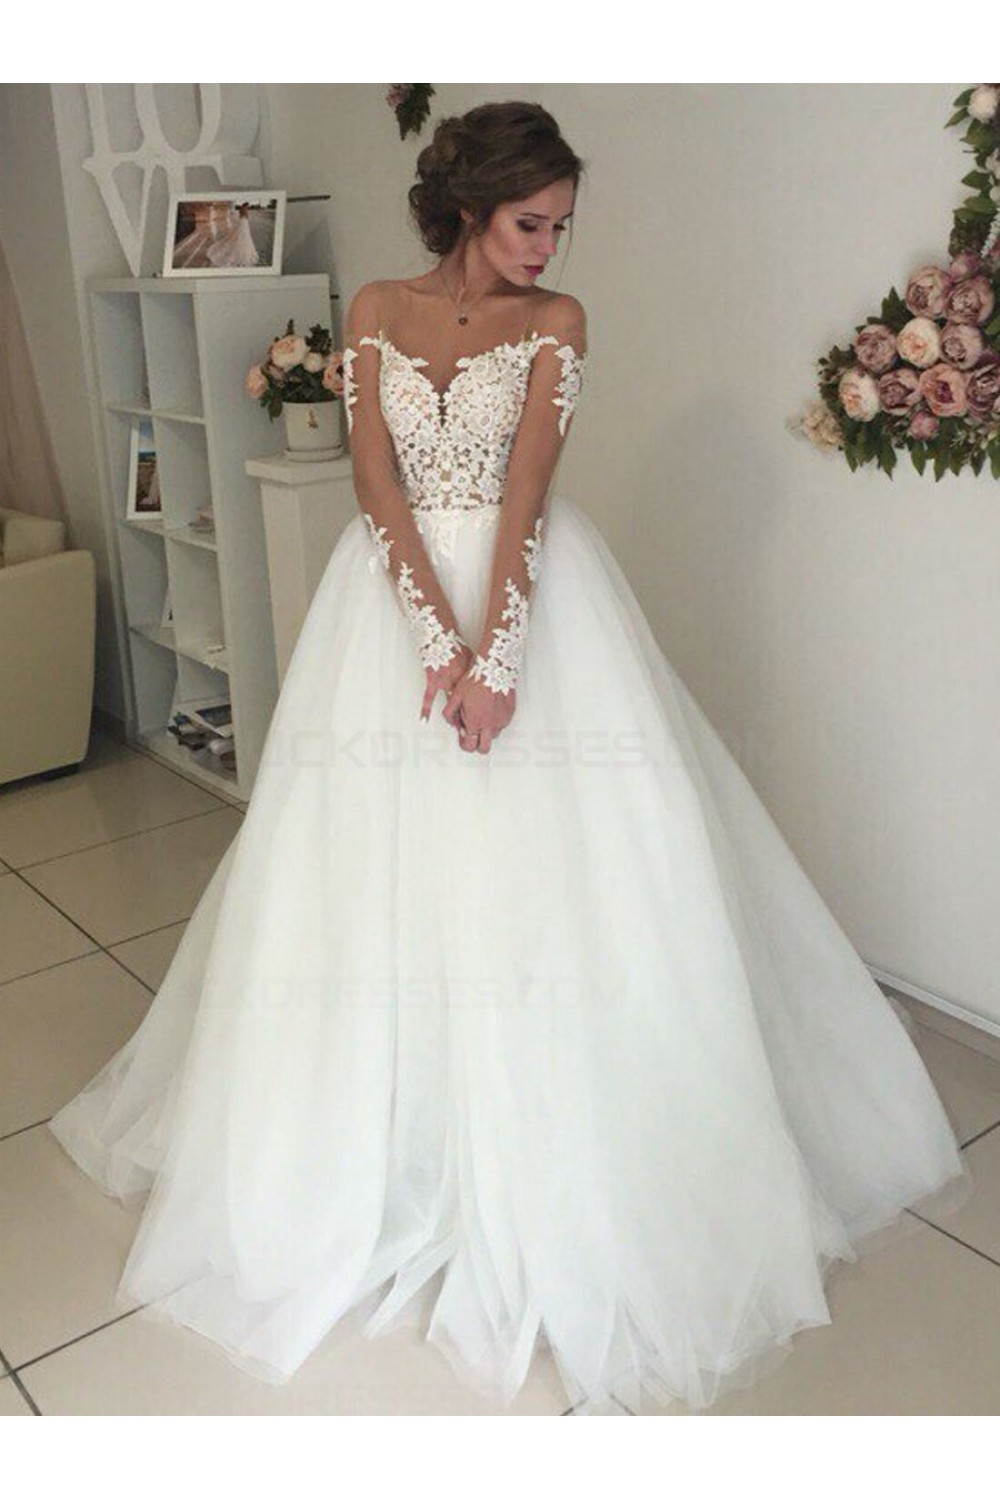 Awesome illusion neckline wedding gowns contemporary for Wedding dress neckline styles